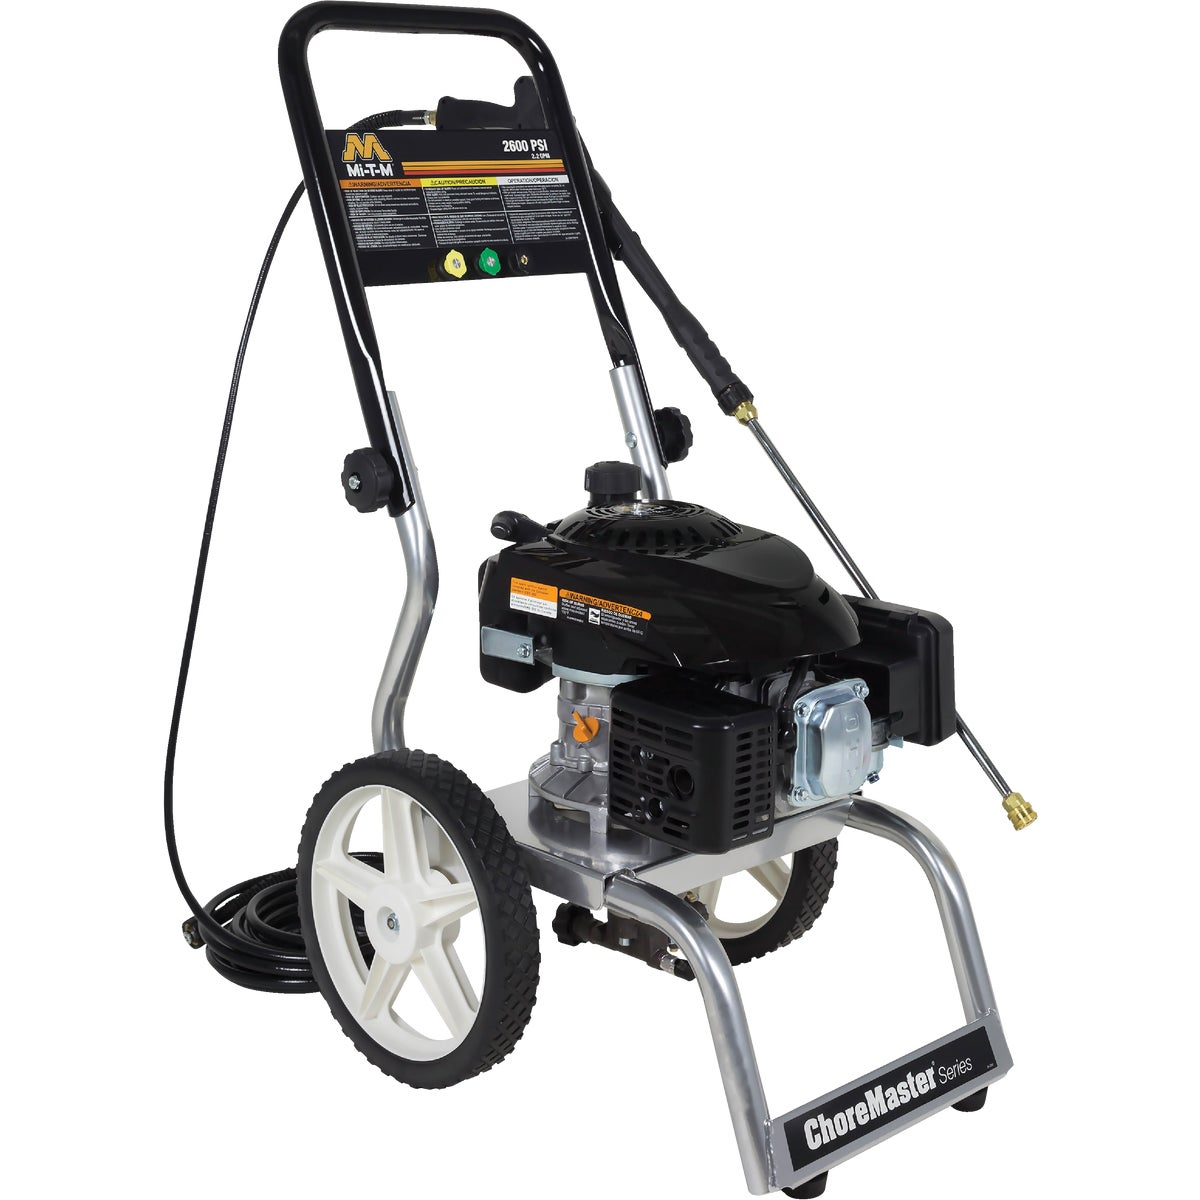 2400PSI PRESSURE WASHER - CV-2400-0MMC by Mi T M Corp